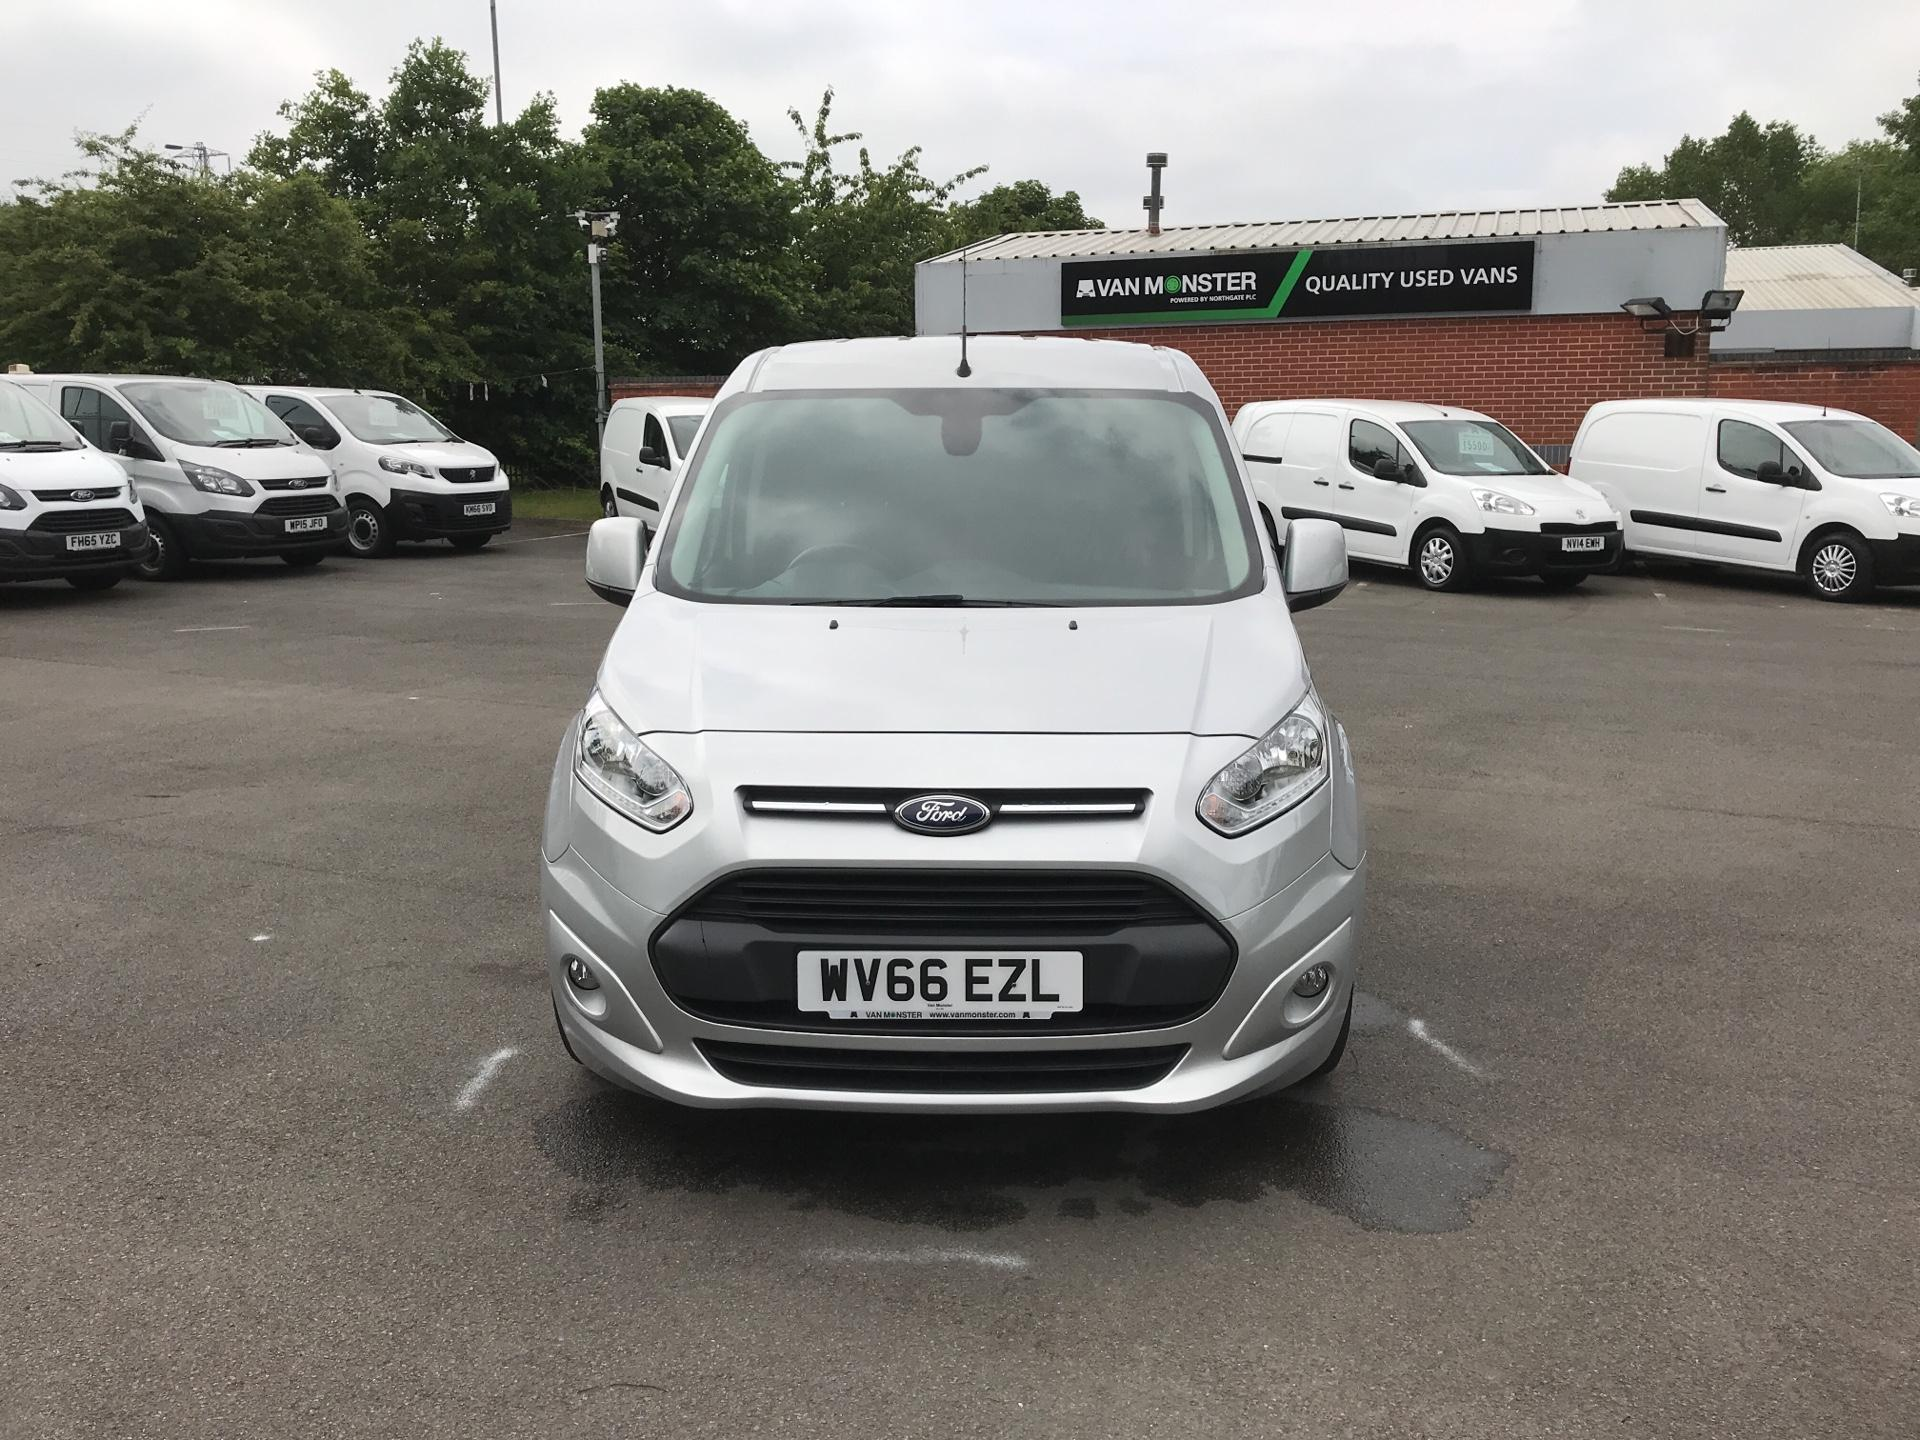 2016 Ford Transit Connect 1.5 Tdci 120Ps Limited Van EURO 6 (WV66EZL) Image 8